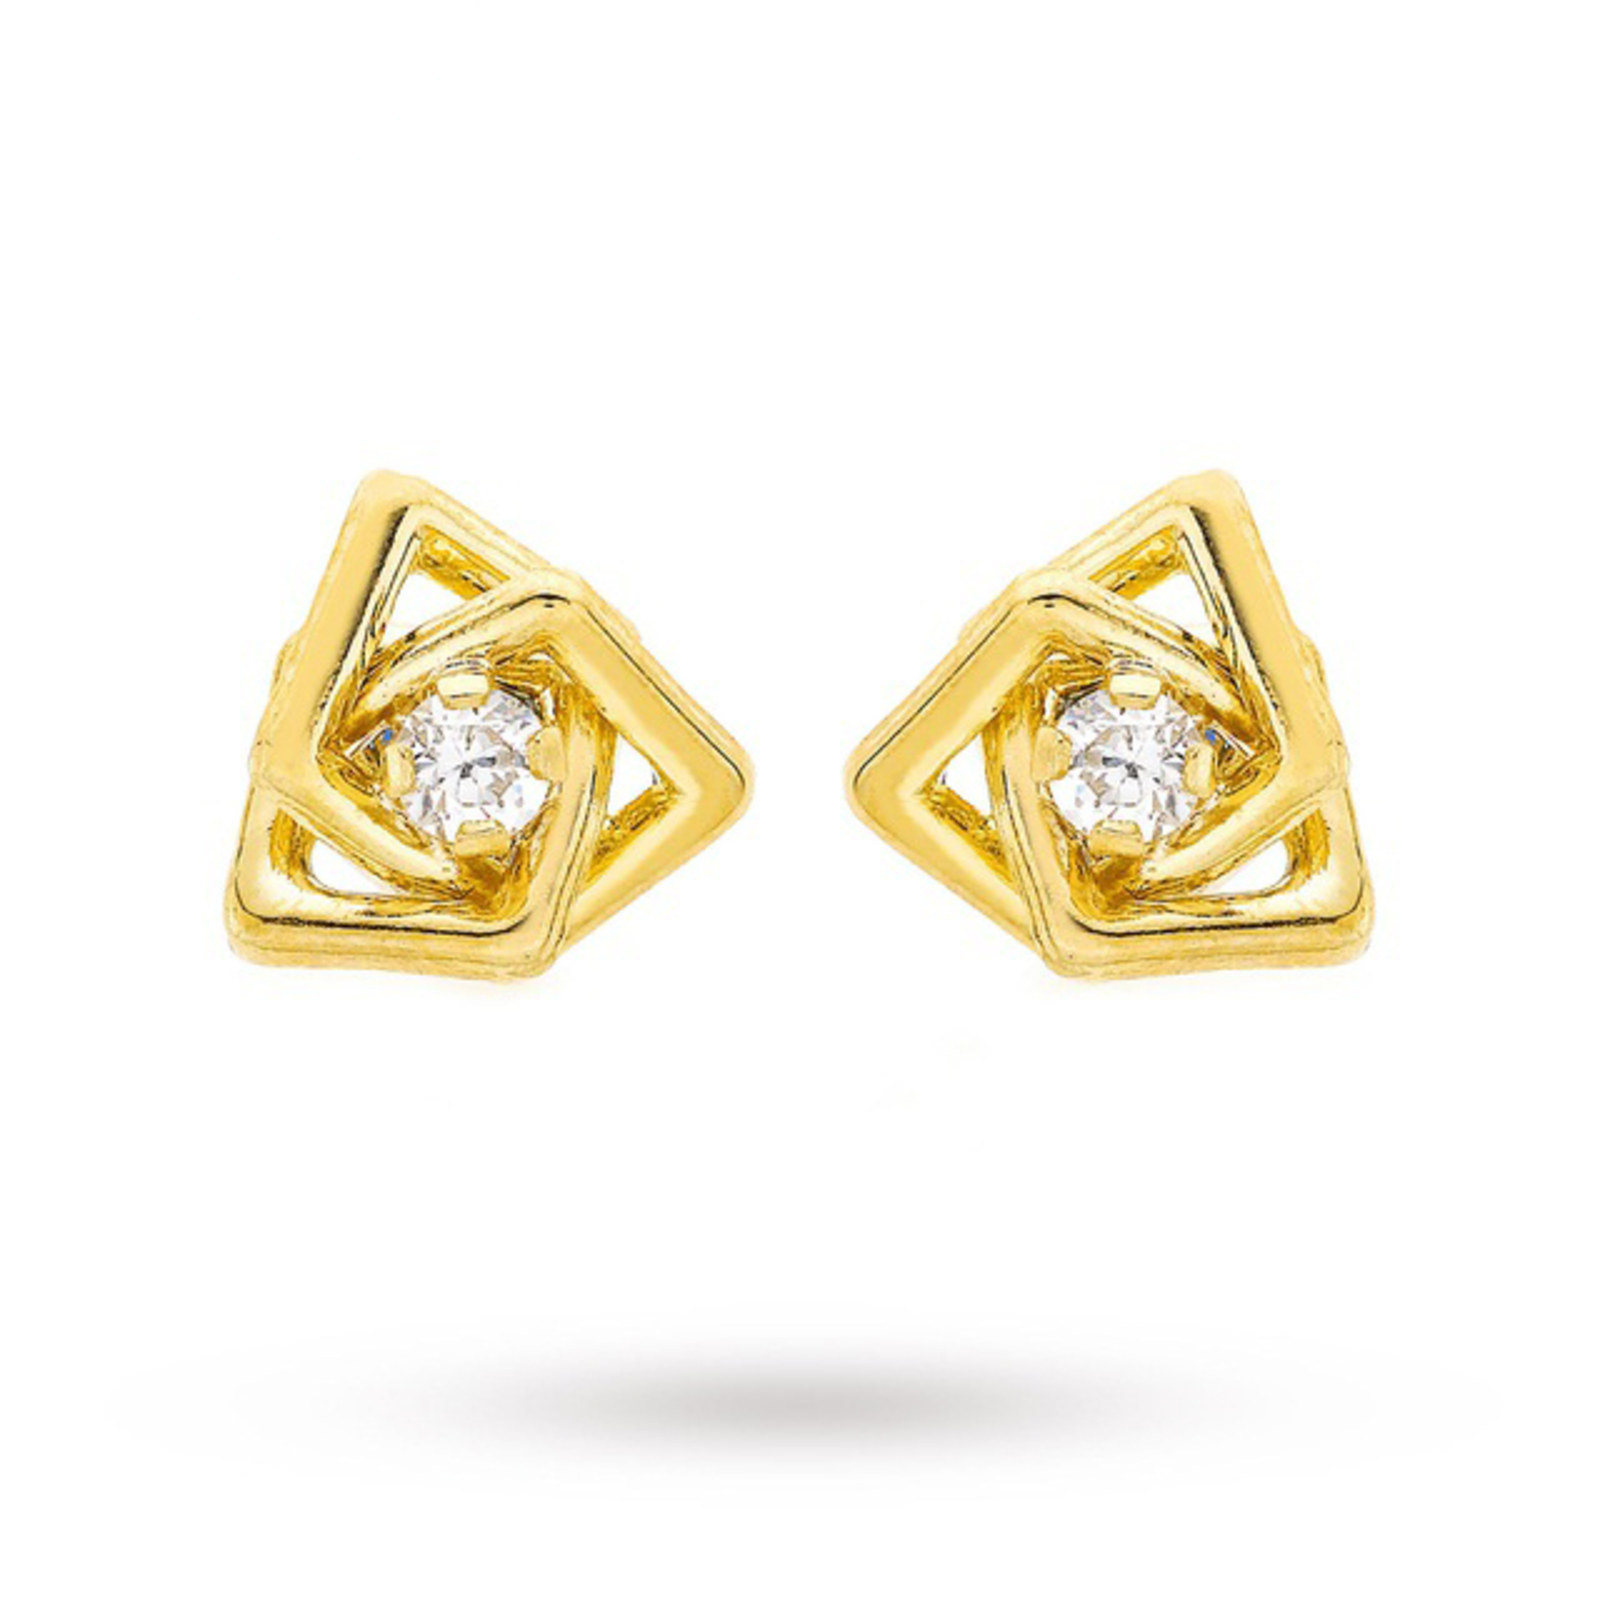 9 Carat Yellow Gold 8mm Square Knot and Cubic Zirconia Stud Earrings